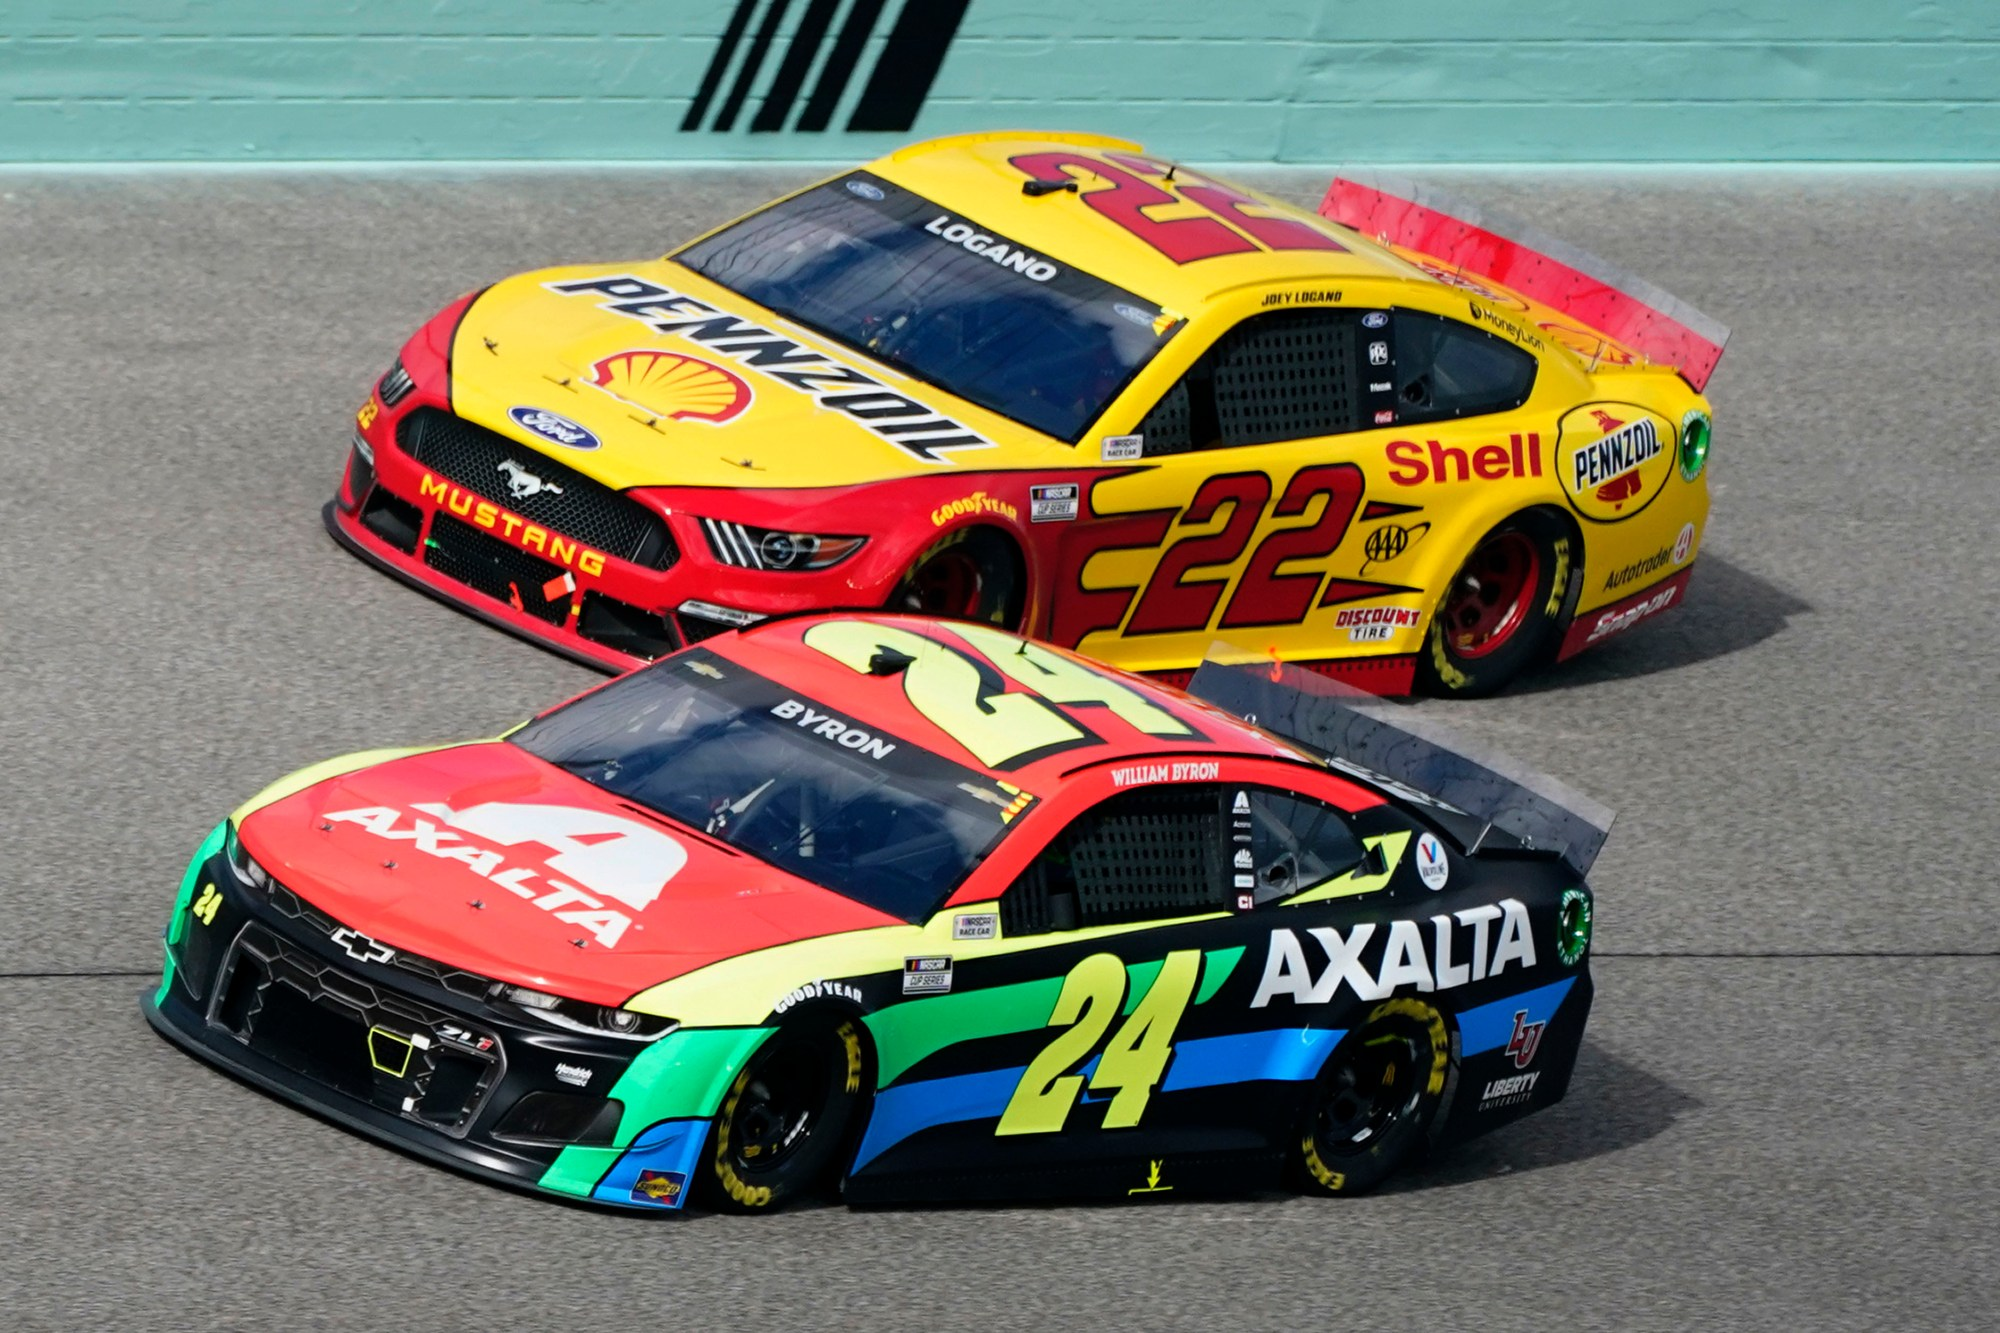 Joey Logano, William Byron, Noah Gragson